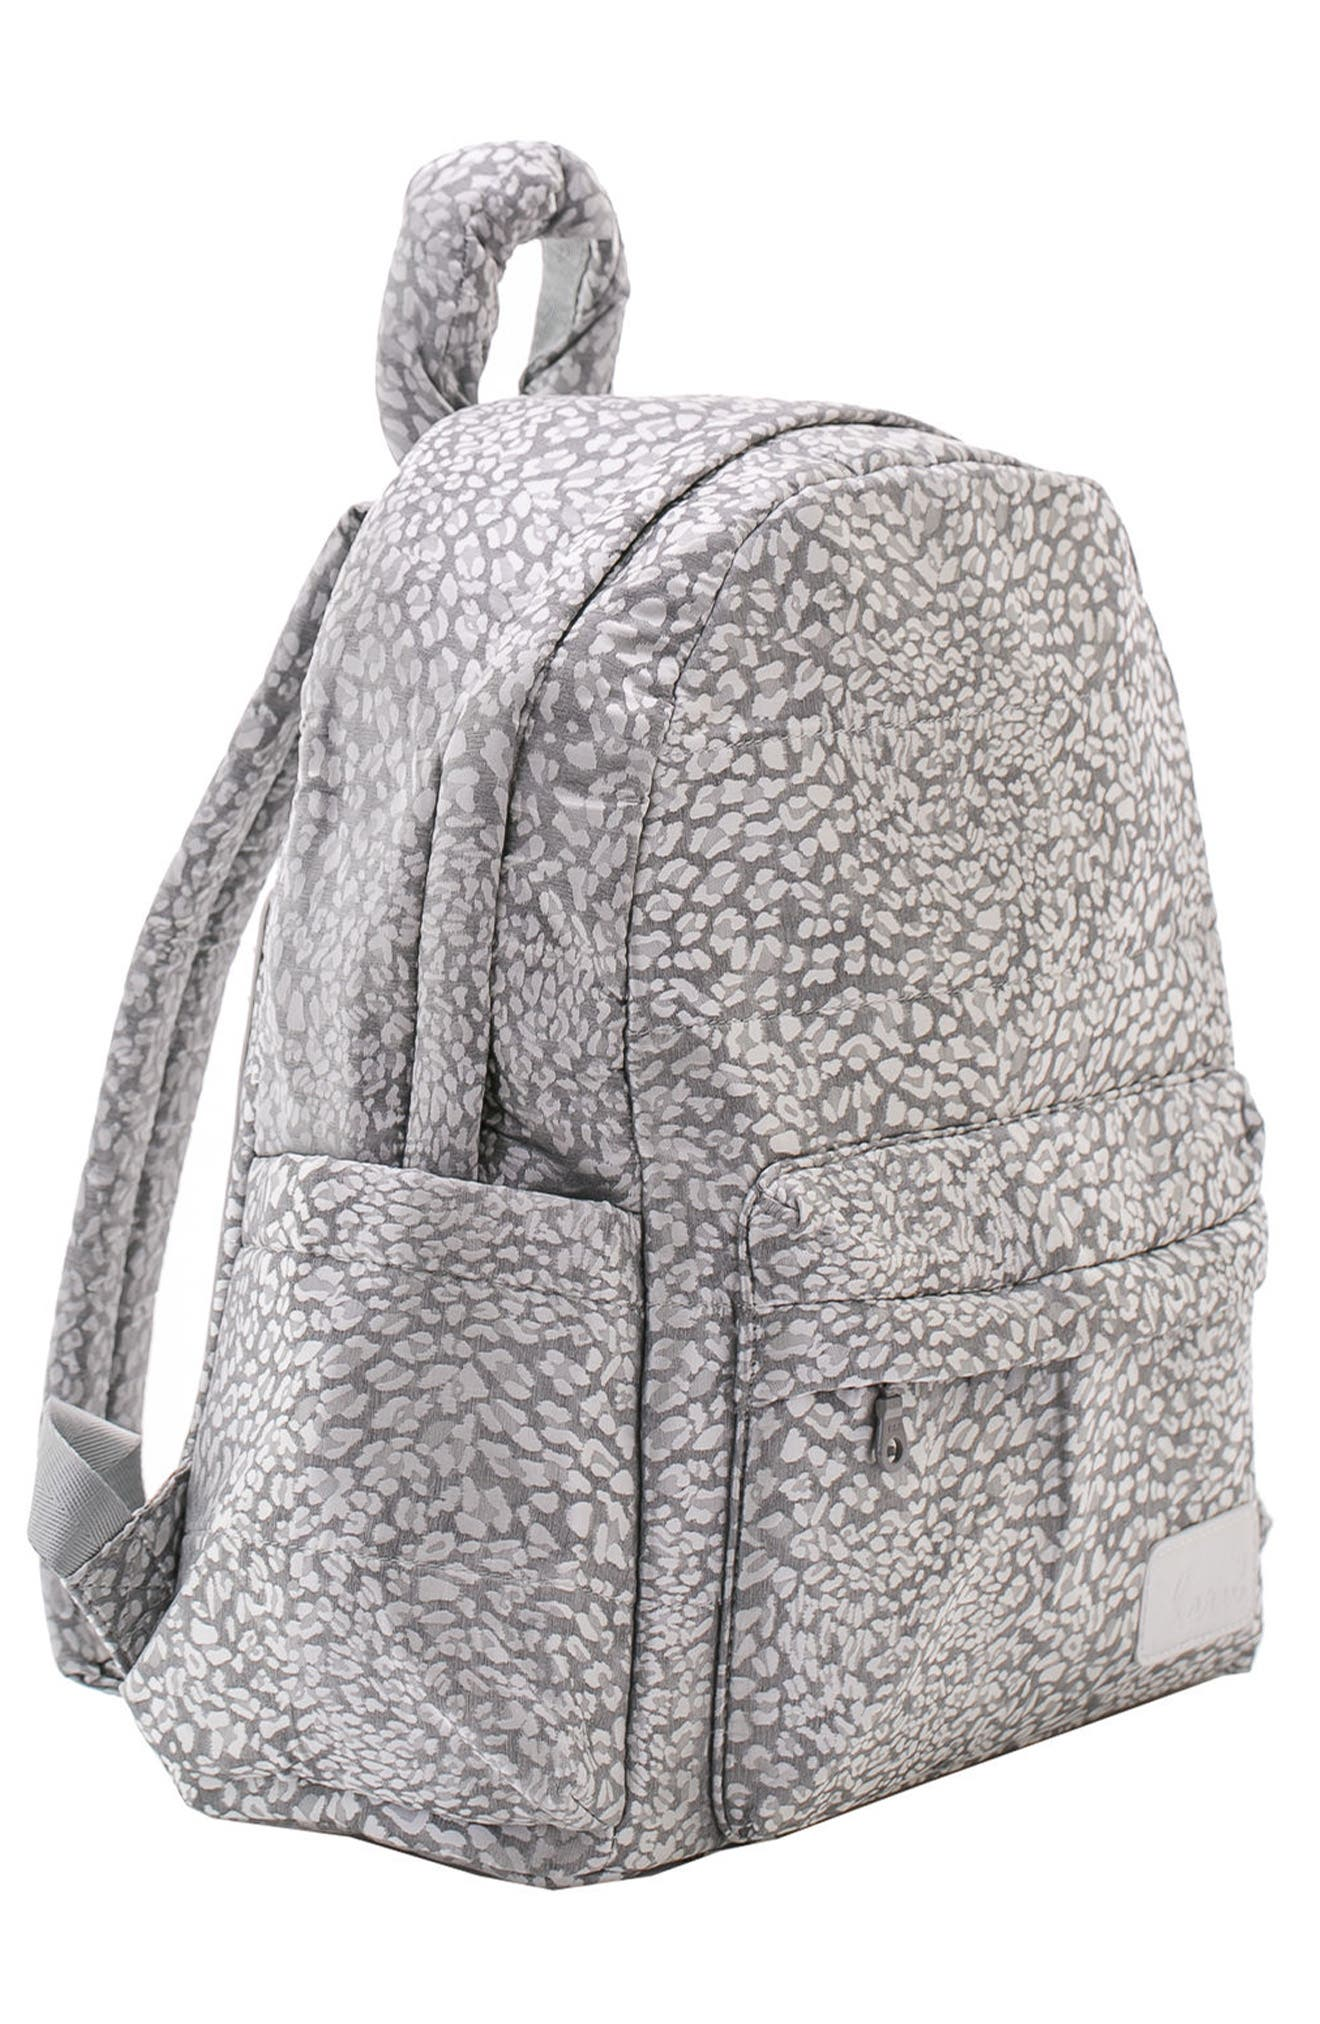 Print Water Repellent Diaper Backpack,                             Alternate thumbnail 5, color,                             SILVER LEOPARD